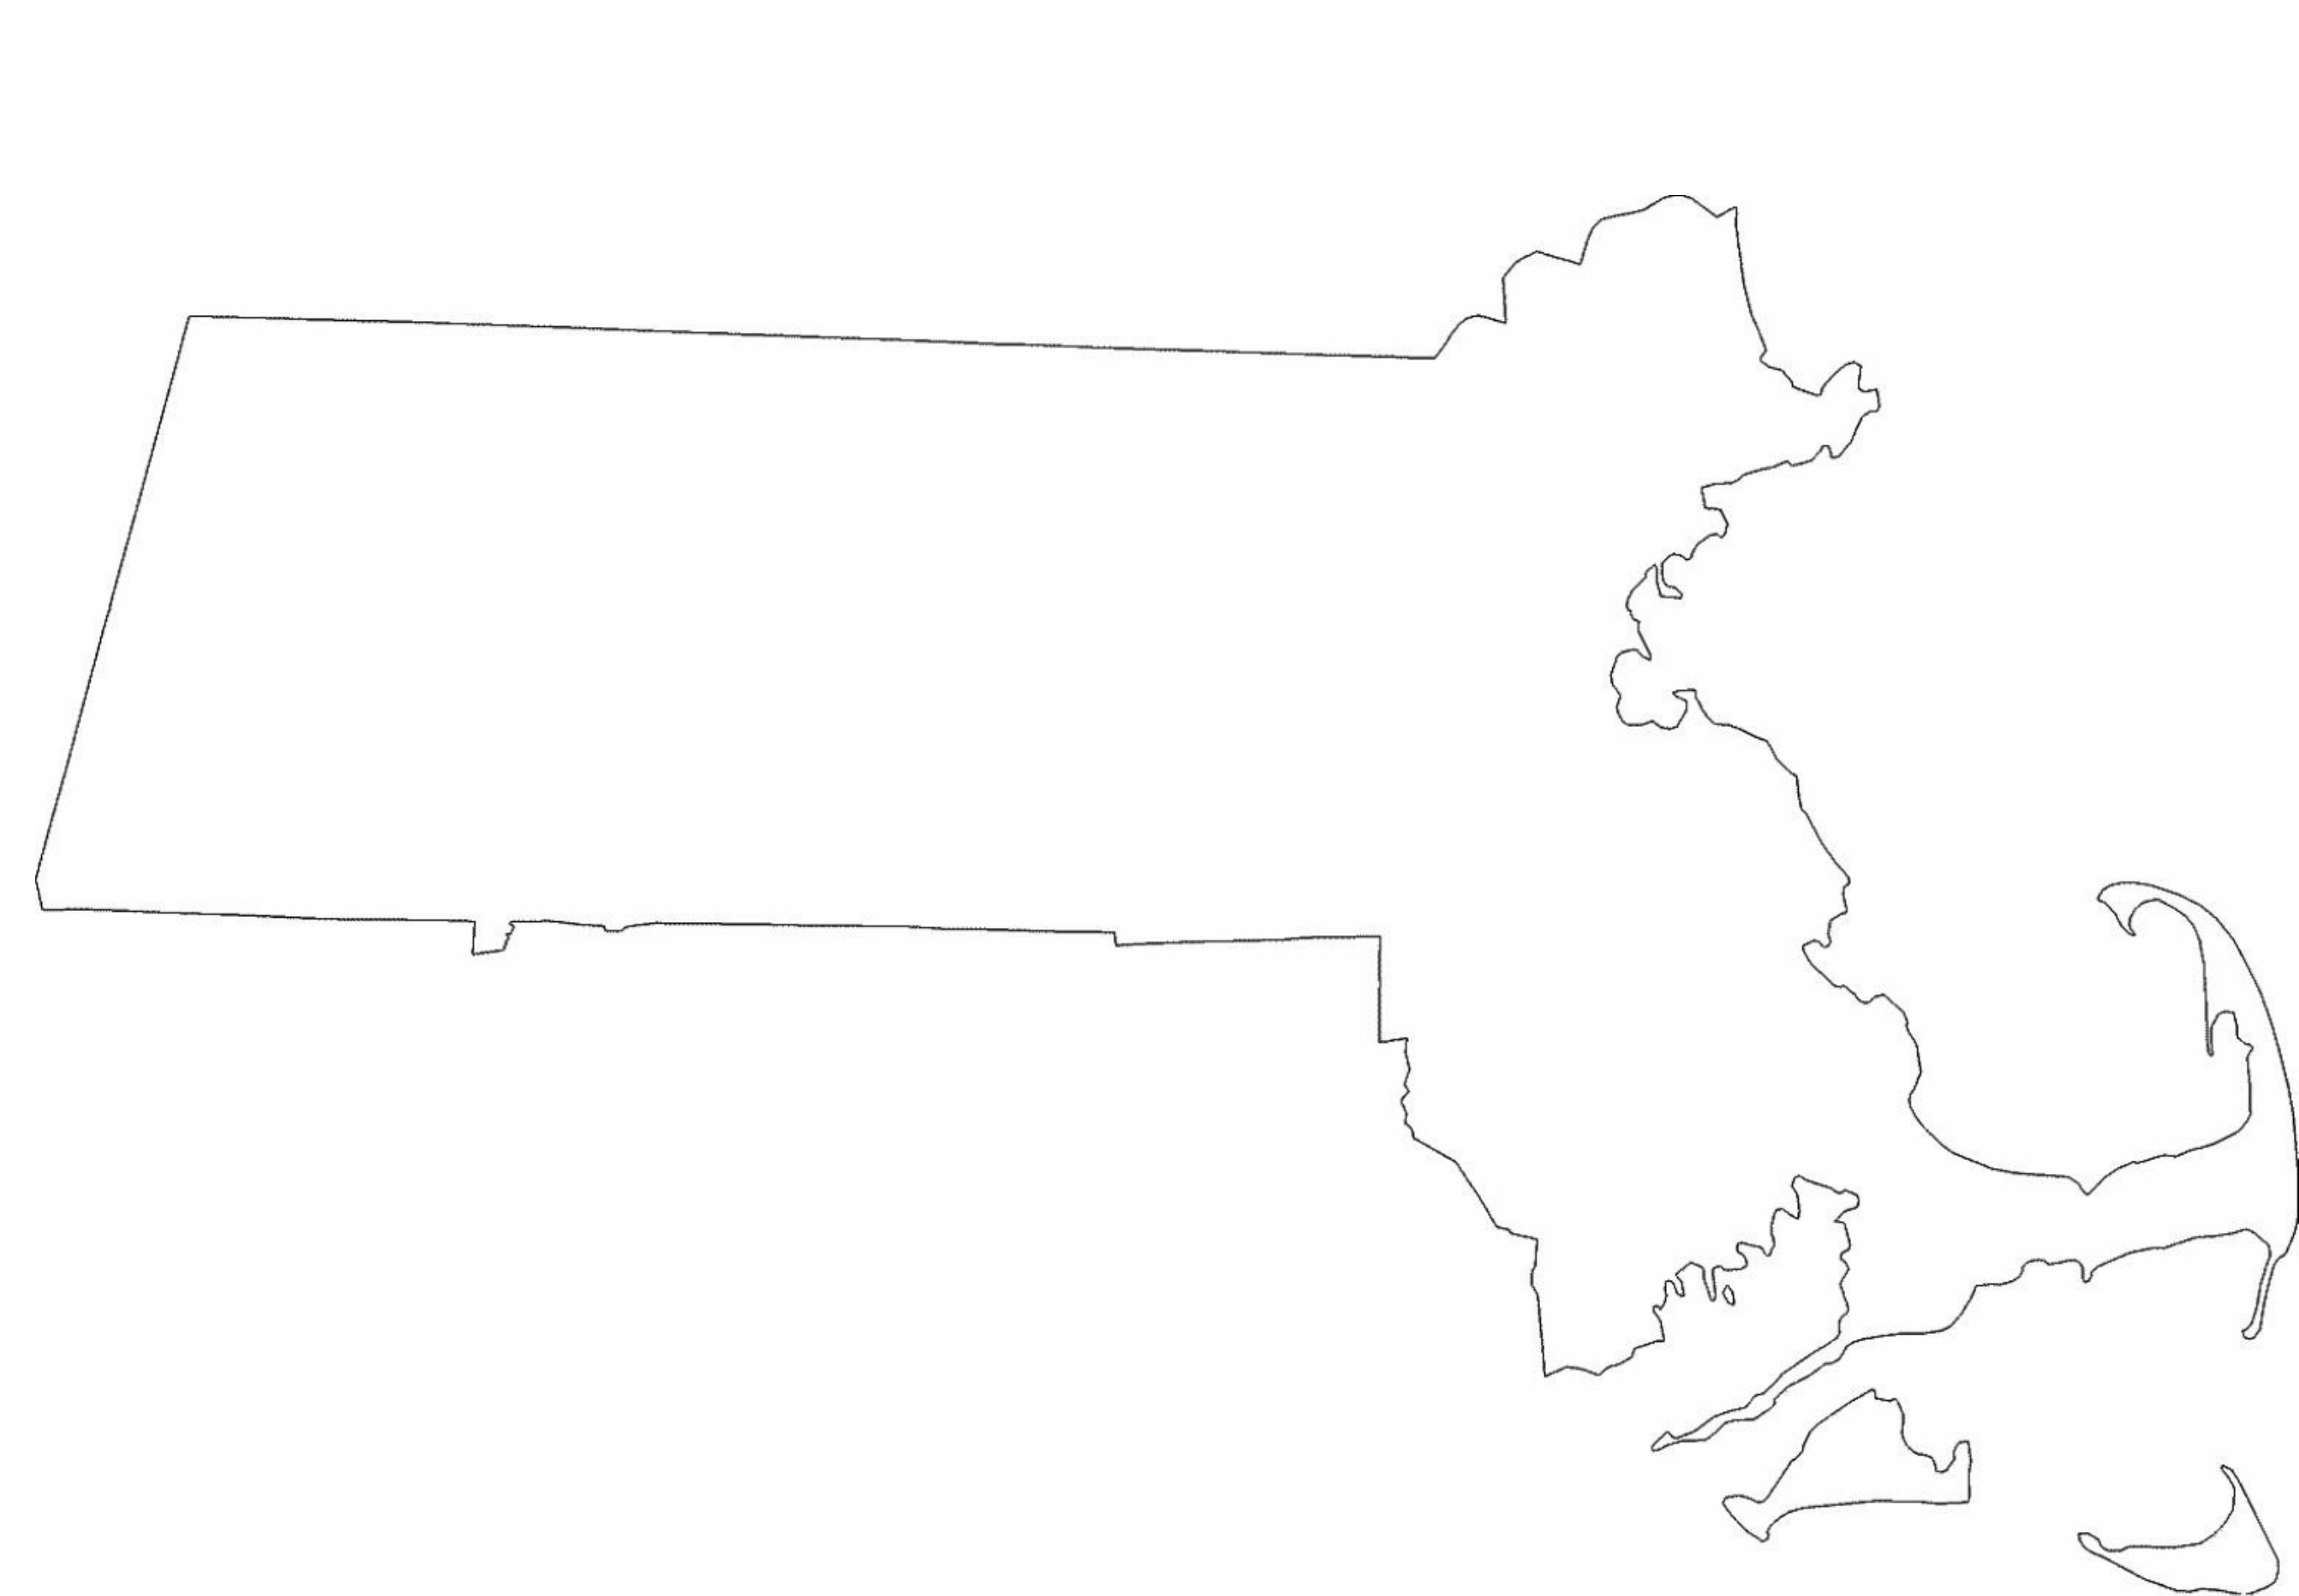 state of arkansas county map with Free Massachusetts State Outline Map on Road Map additionally Mississippi Map further Map Of Upper Peninsula Of Michigan furthermore Road Map Of Minnesota With Cities as well DC District Of Columbia.